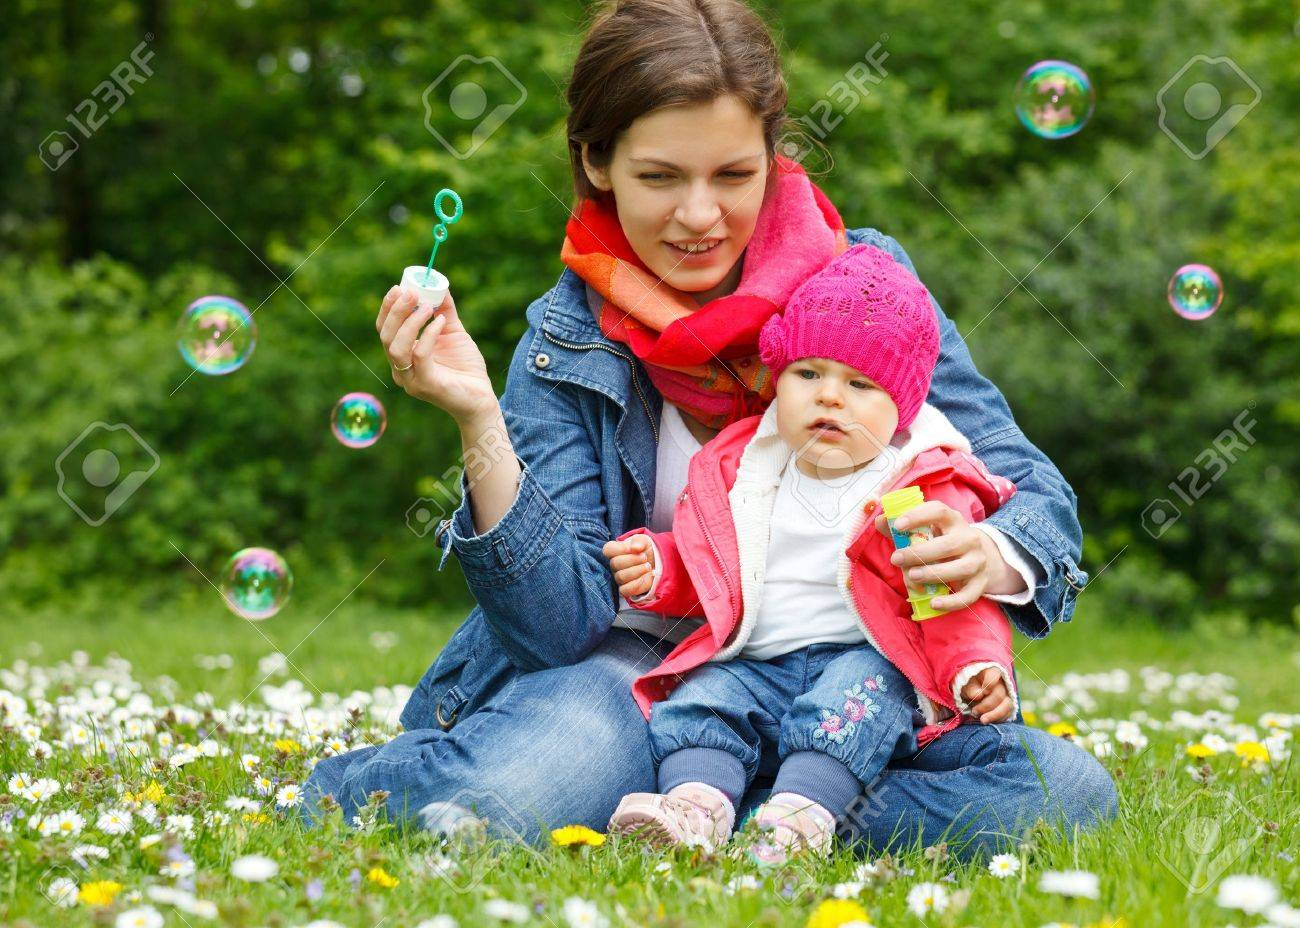 Mother with baby playing in the park Stock Photo - 9696178